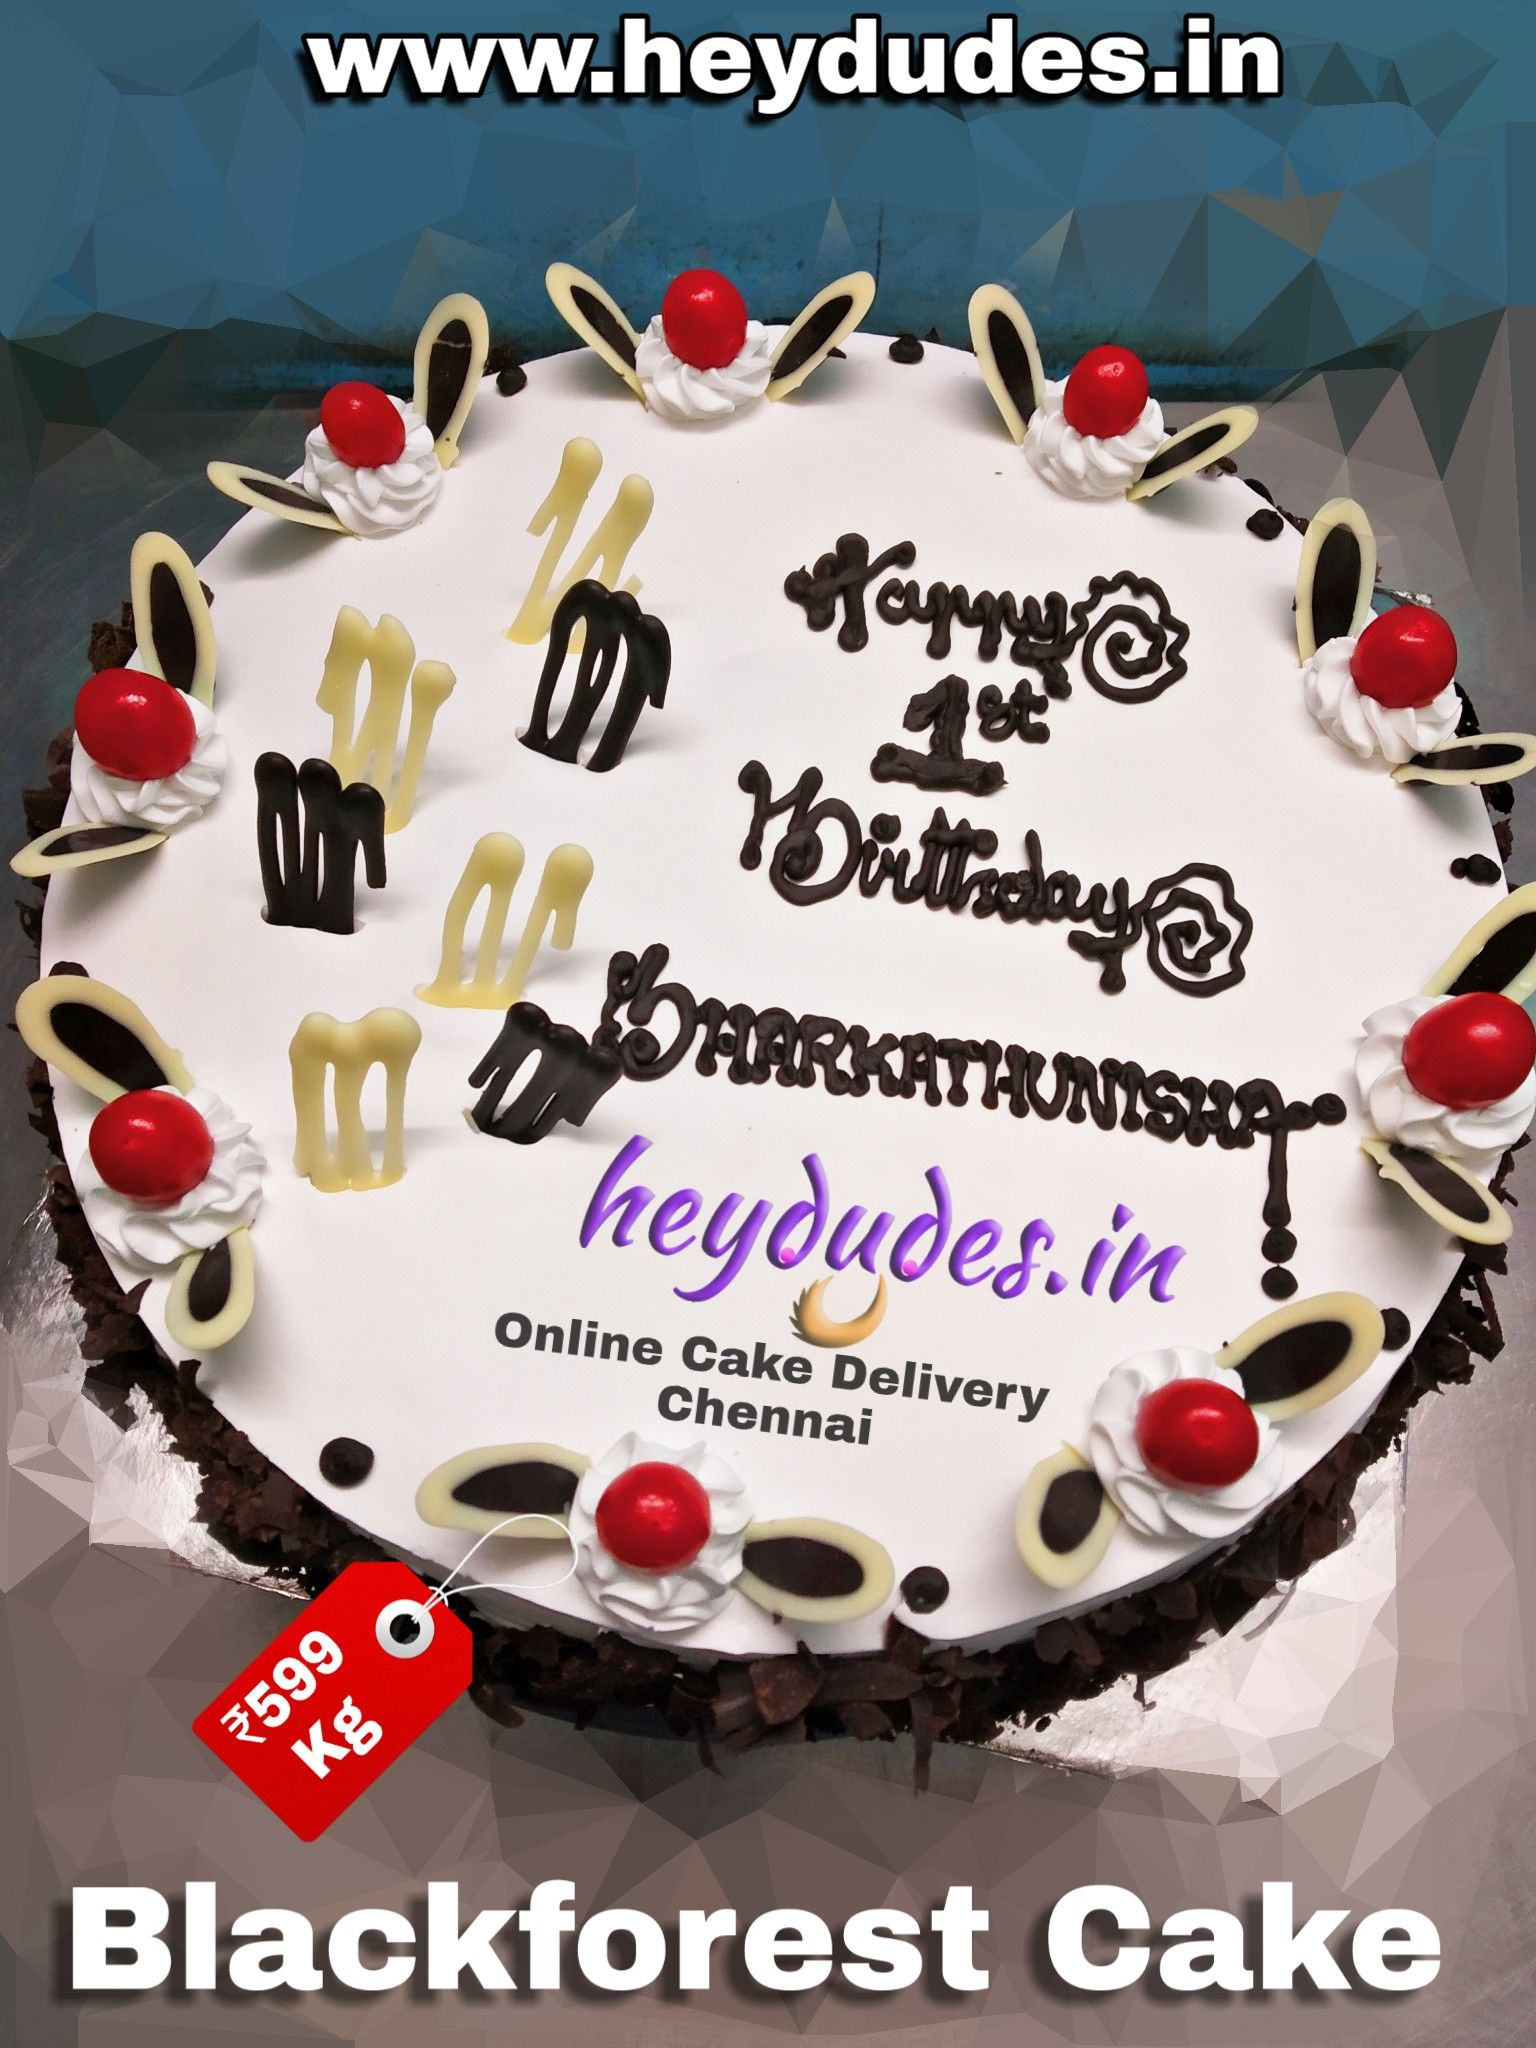 24 Hours Cake Delivery Heydudesin Onlinecakedelivery Onlinecakes Cakes